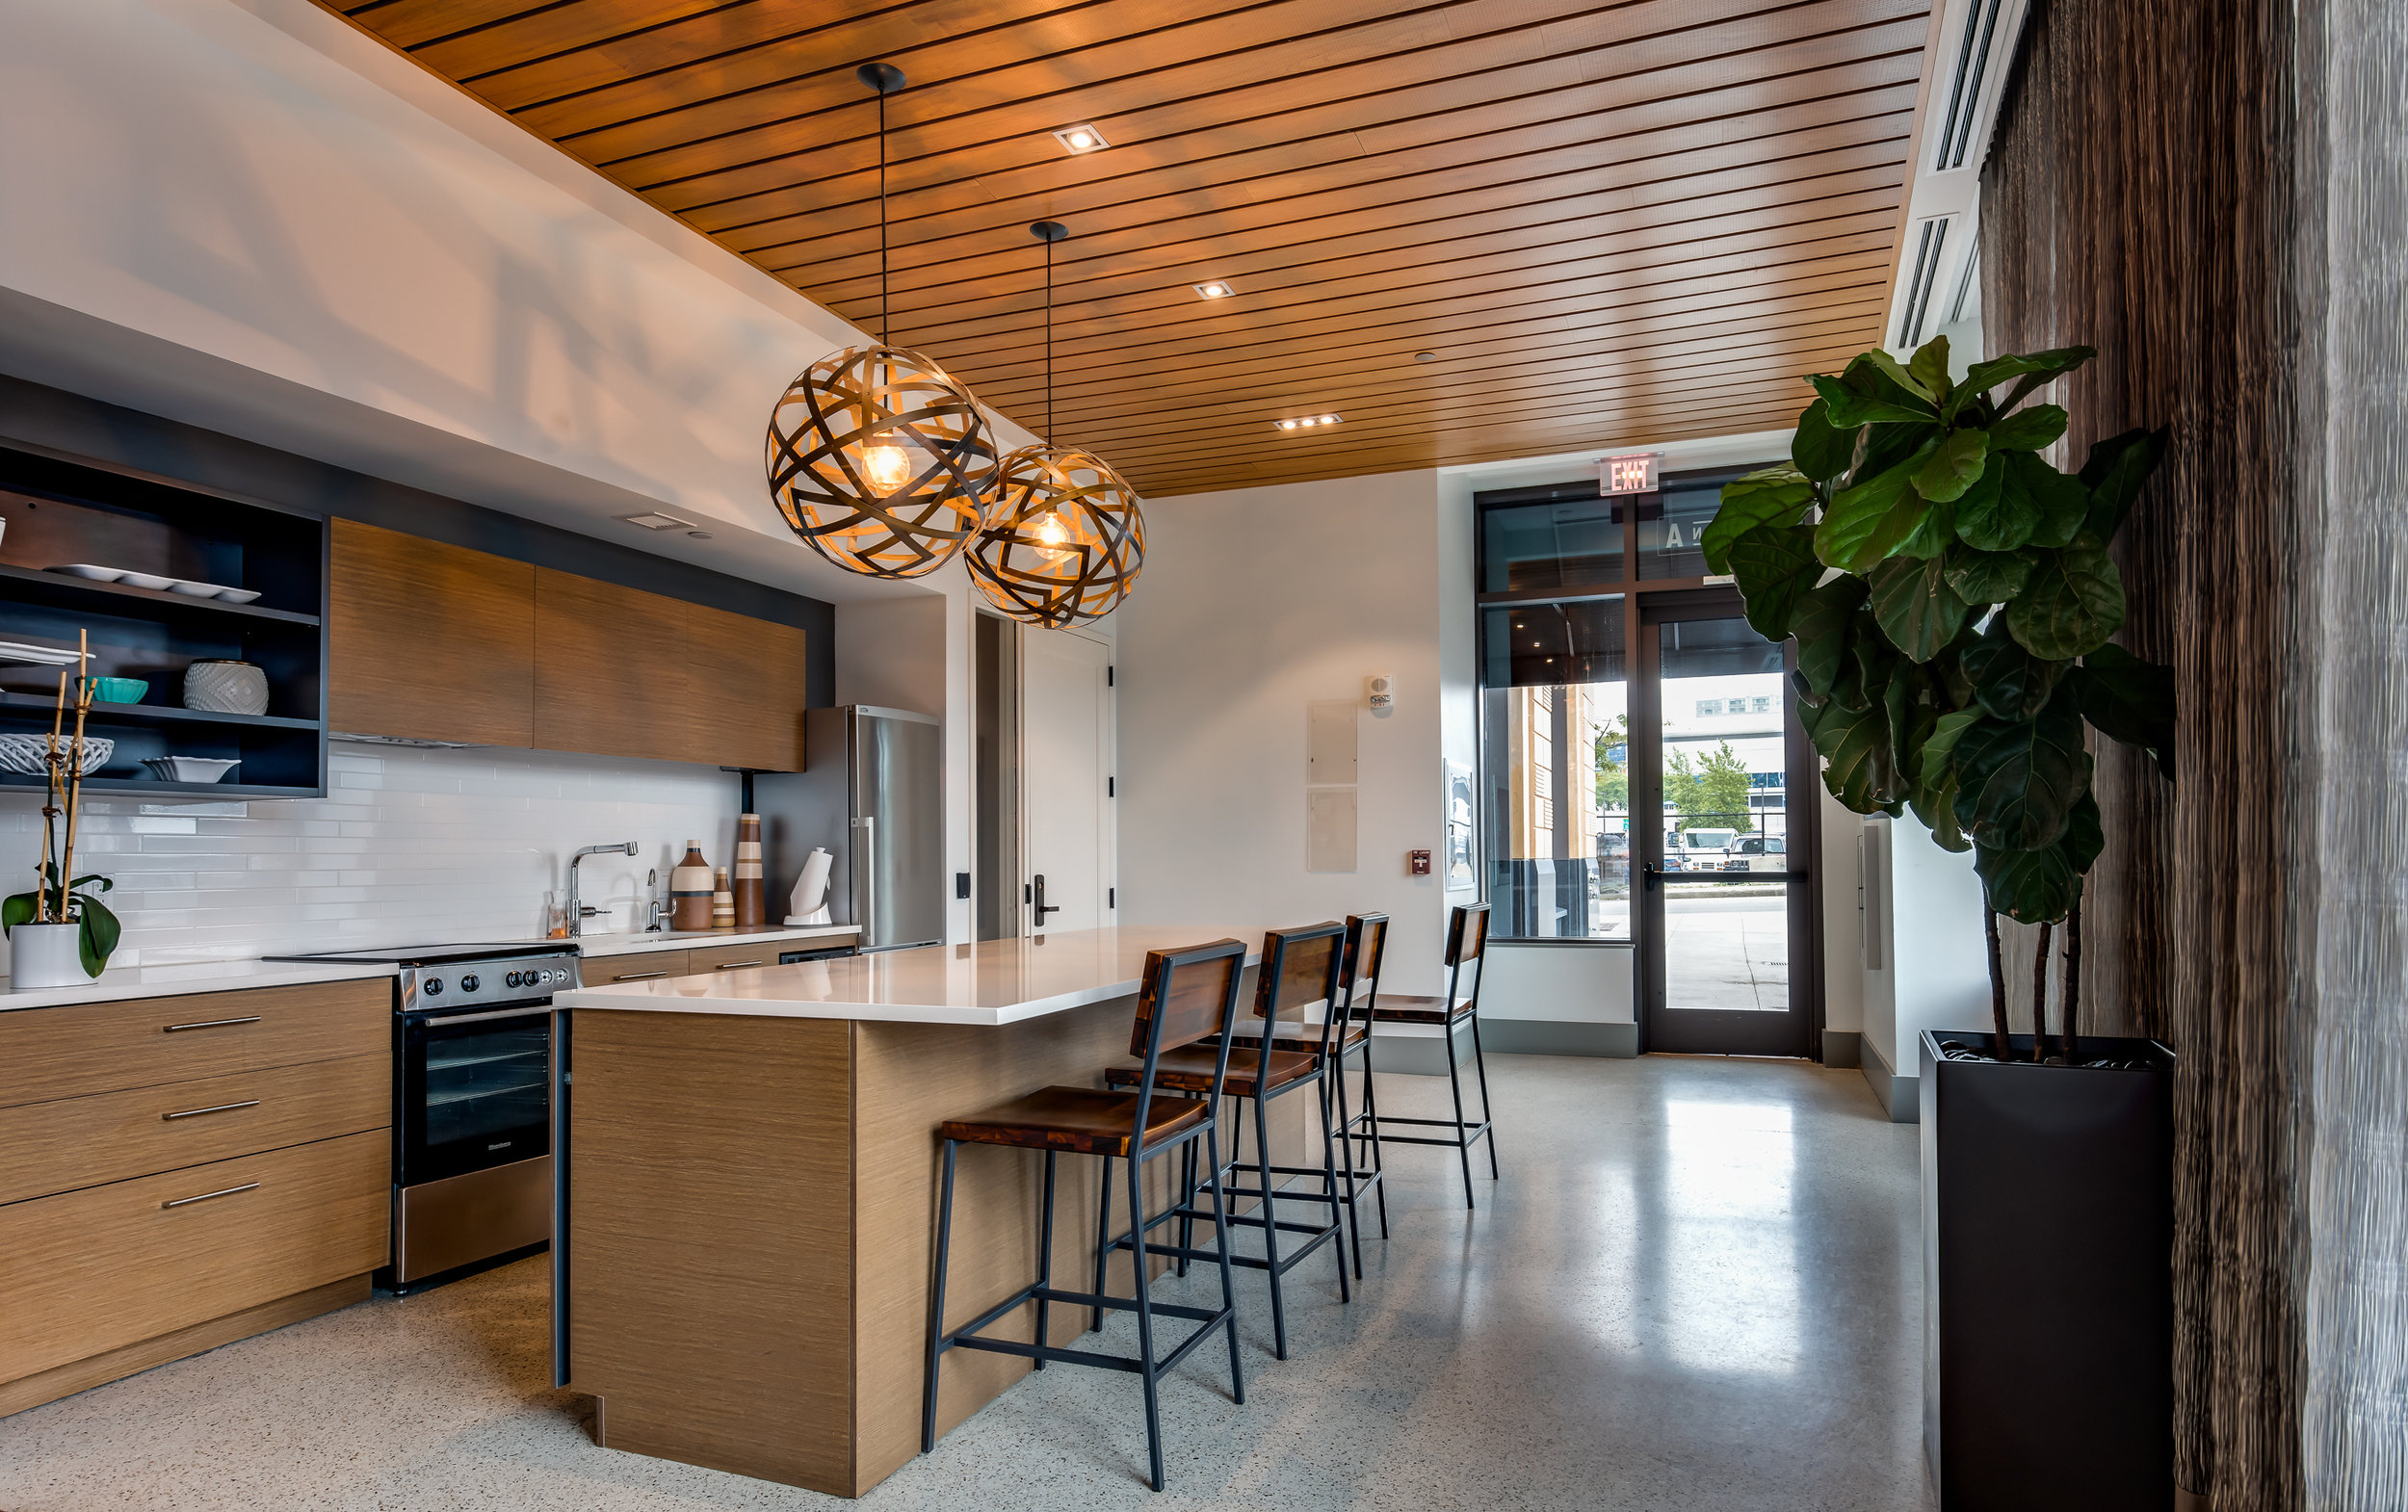 South Boston apartment building's entertaining space. I'm no designer, but this feels like a nice harmony between modern and natural, with a neat ceiling and light fixtures to help the transition. Those aren't curtains on the right - it's a natural wood wall.